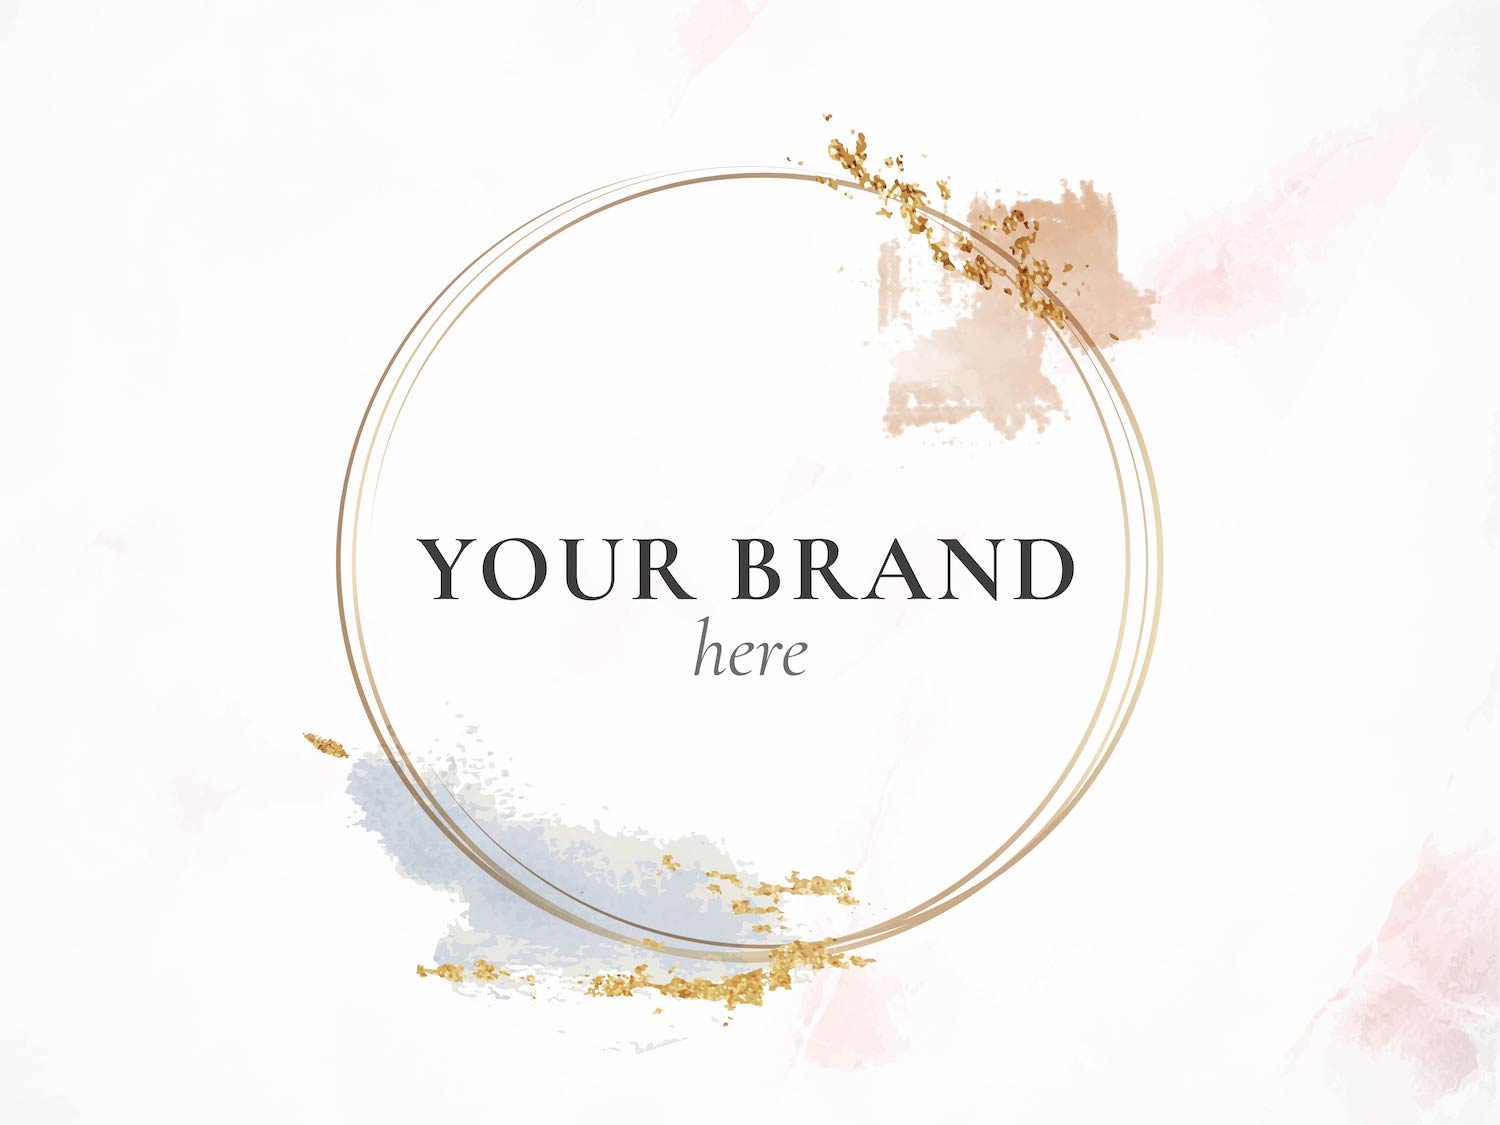 Logo Design - You're ready to think deeply about your brand and create the icon that will represent the amazing business you're building.